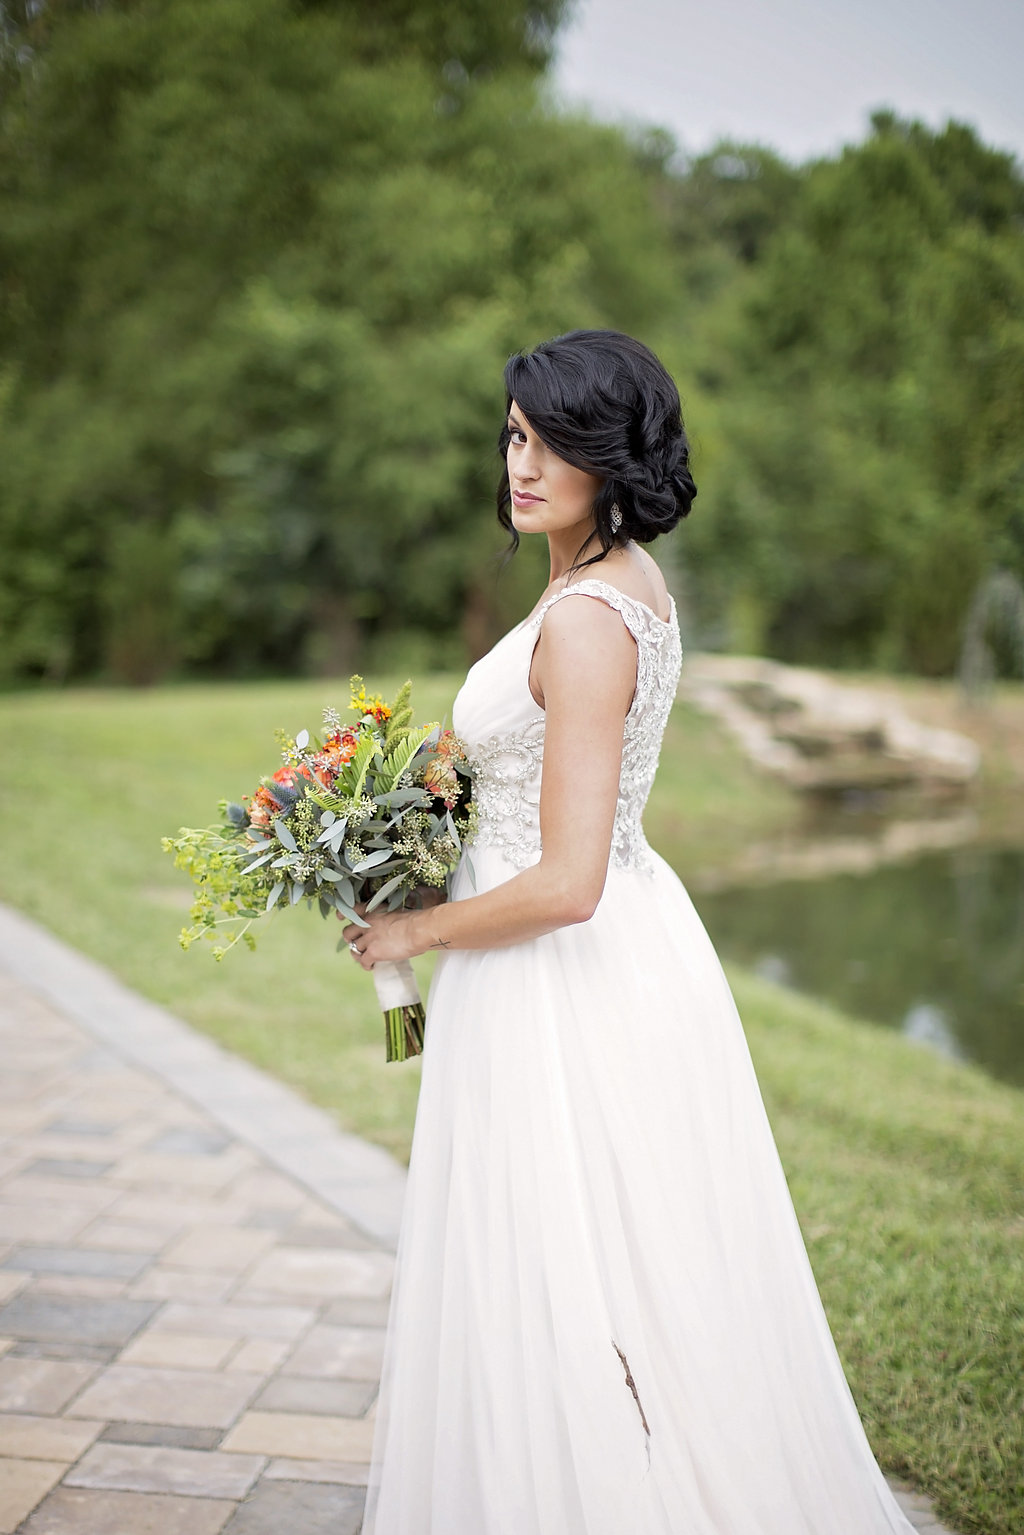 The Southeastern Bride | Taylor Willis Photography